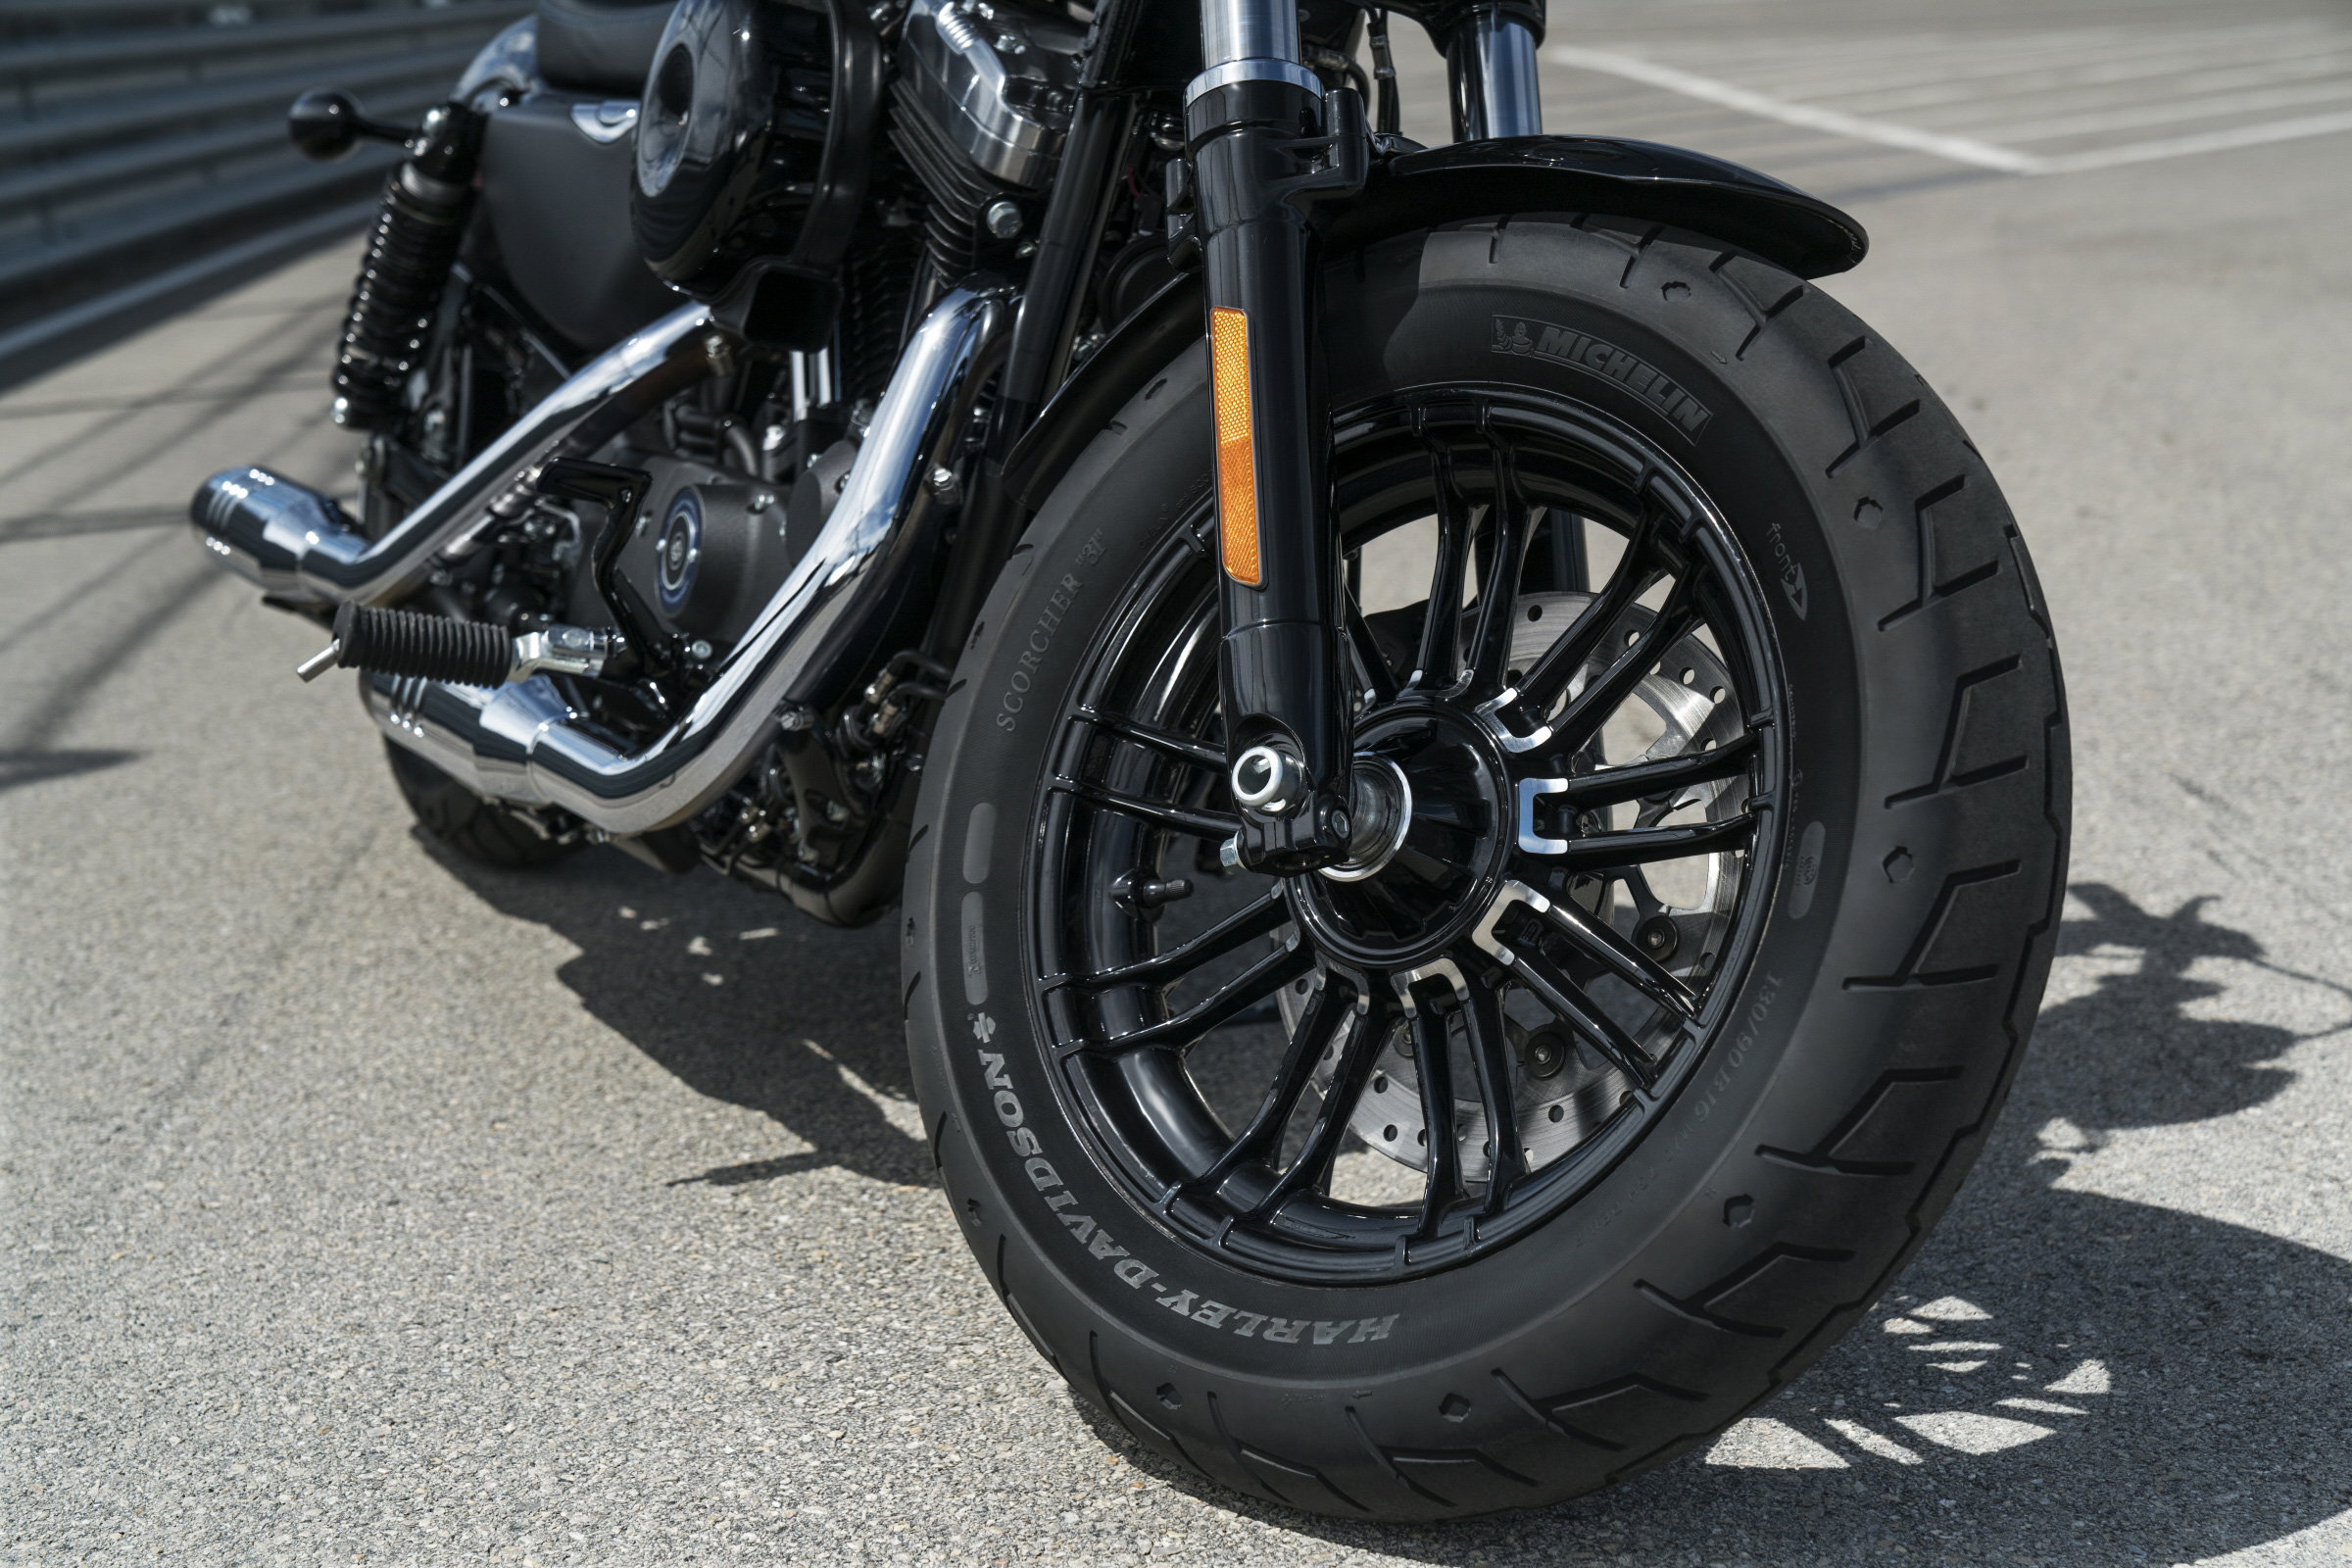 New Harley Davidson: New Harley-Davidson 48X And Pan America For 2019?